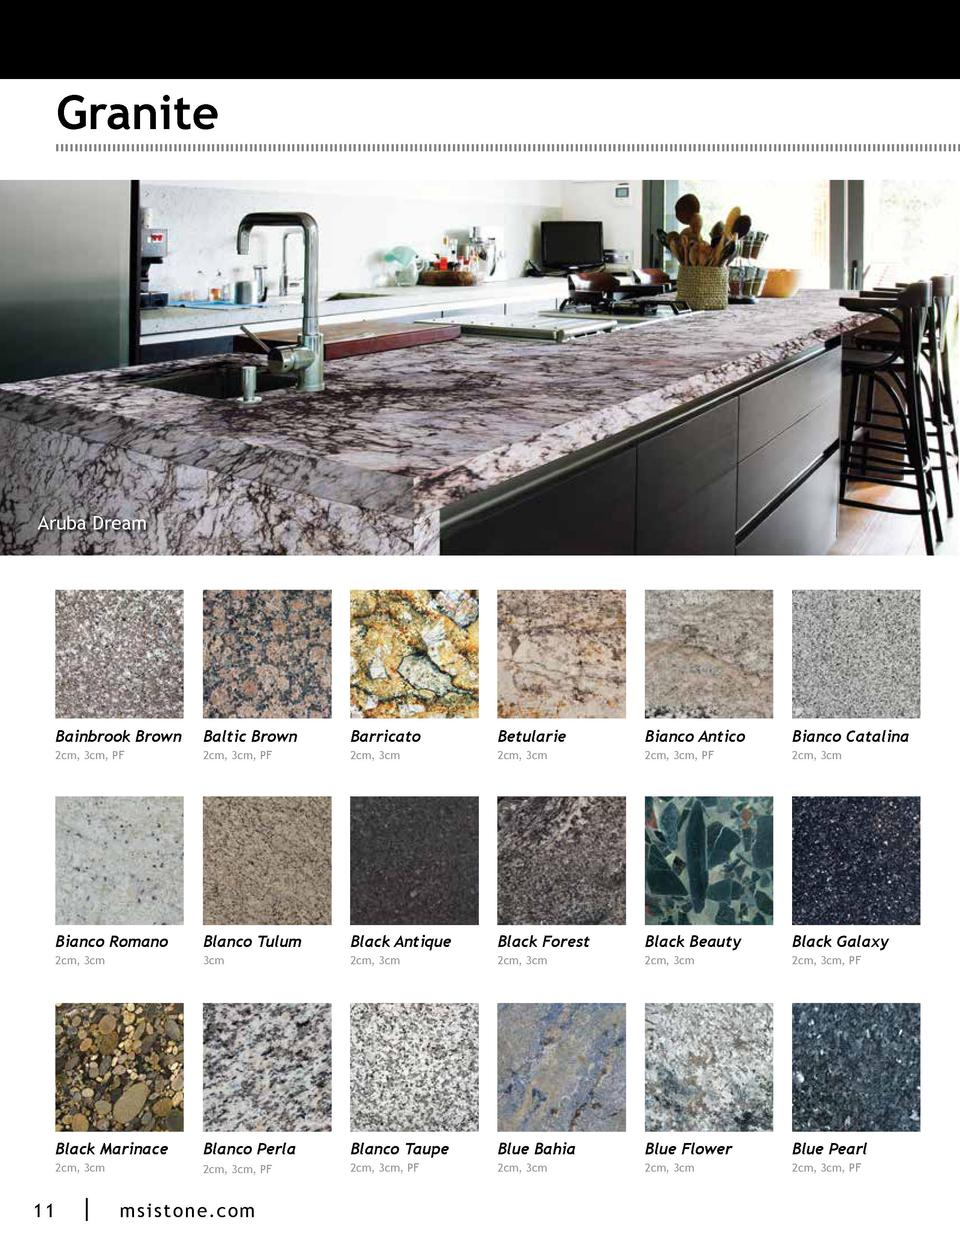 Granite  Bordeaux Dream  Aruba Dream  Bainbrook Brown  Barricato  Betularie  Bianco Antico  Bianco Catalina  2cm, 3cm, PF ...